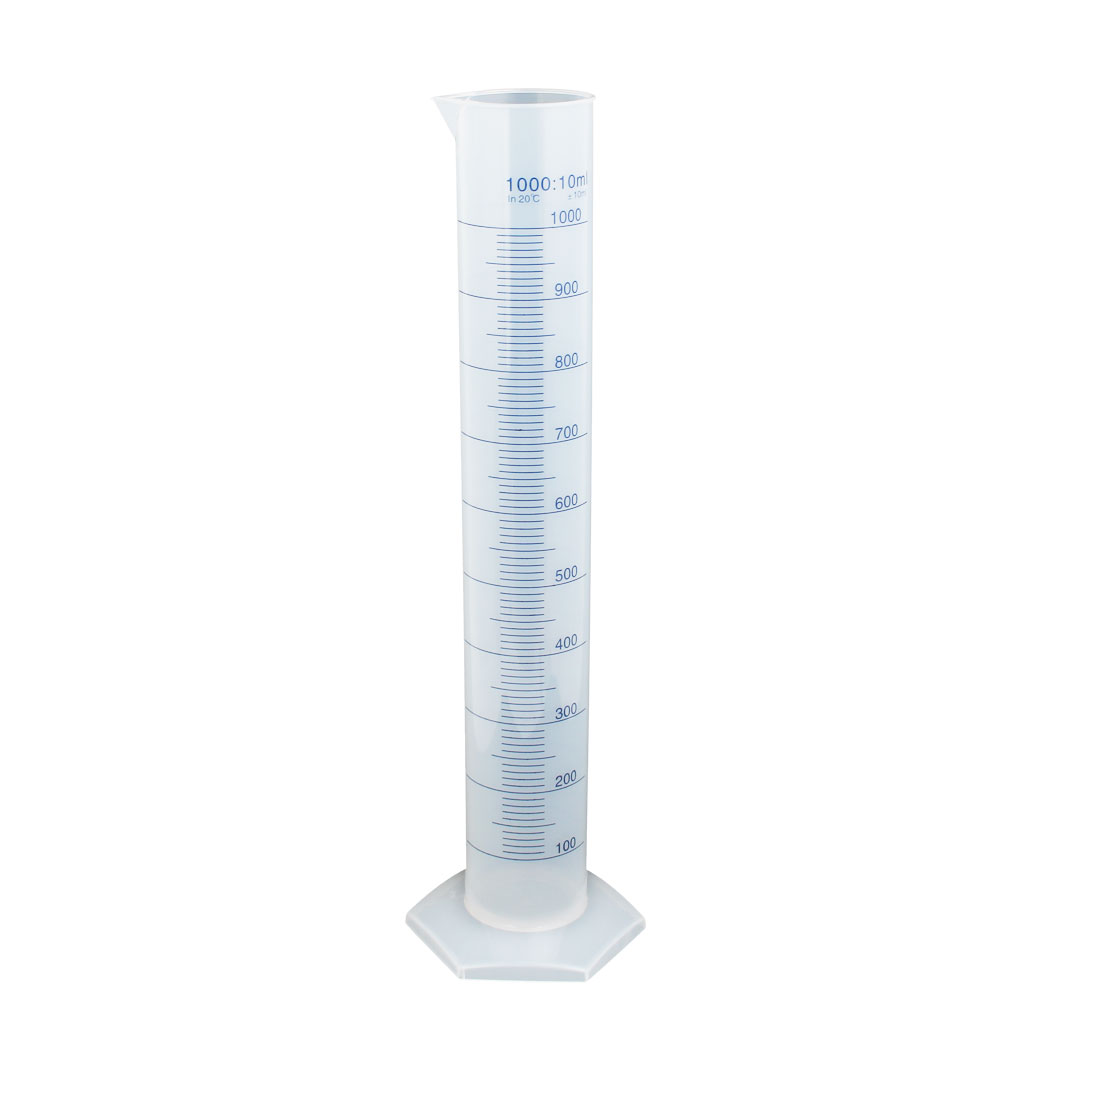 1000mL Volumetric Measuring Cup Laboratory DIY Project Beaker Clear